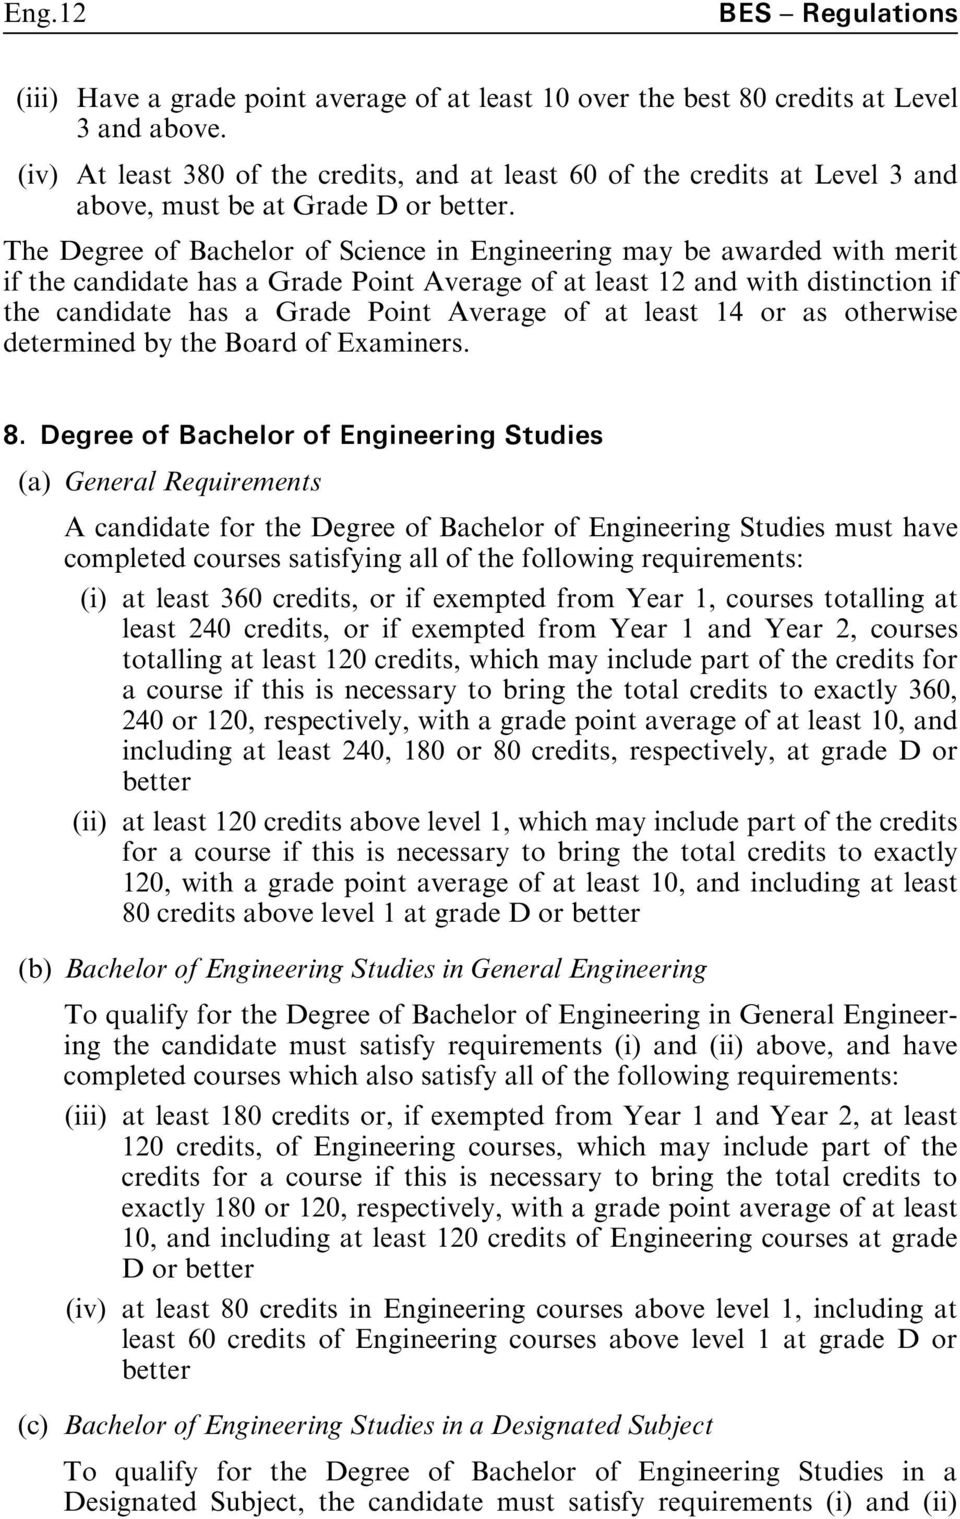 The Degree of Bachelor of Science in Engineering may be awarded with merit if the candidate has a Grade Point Average of at least 12 and with distinction if the candidate has a Grade Point Average of